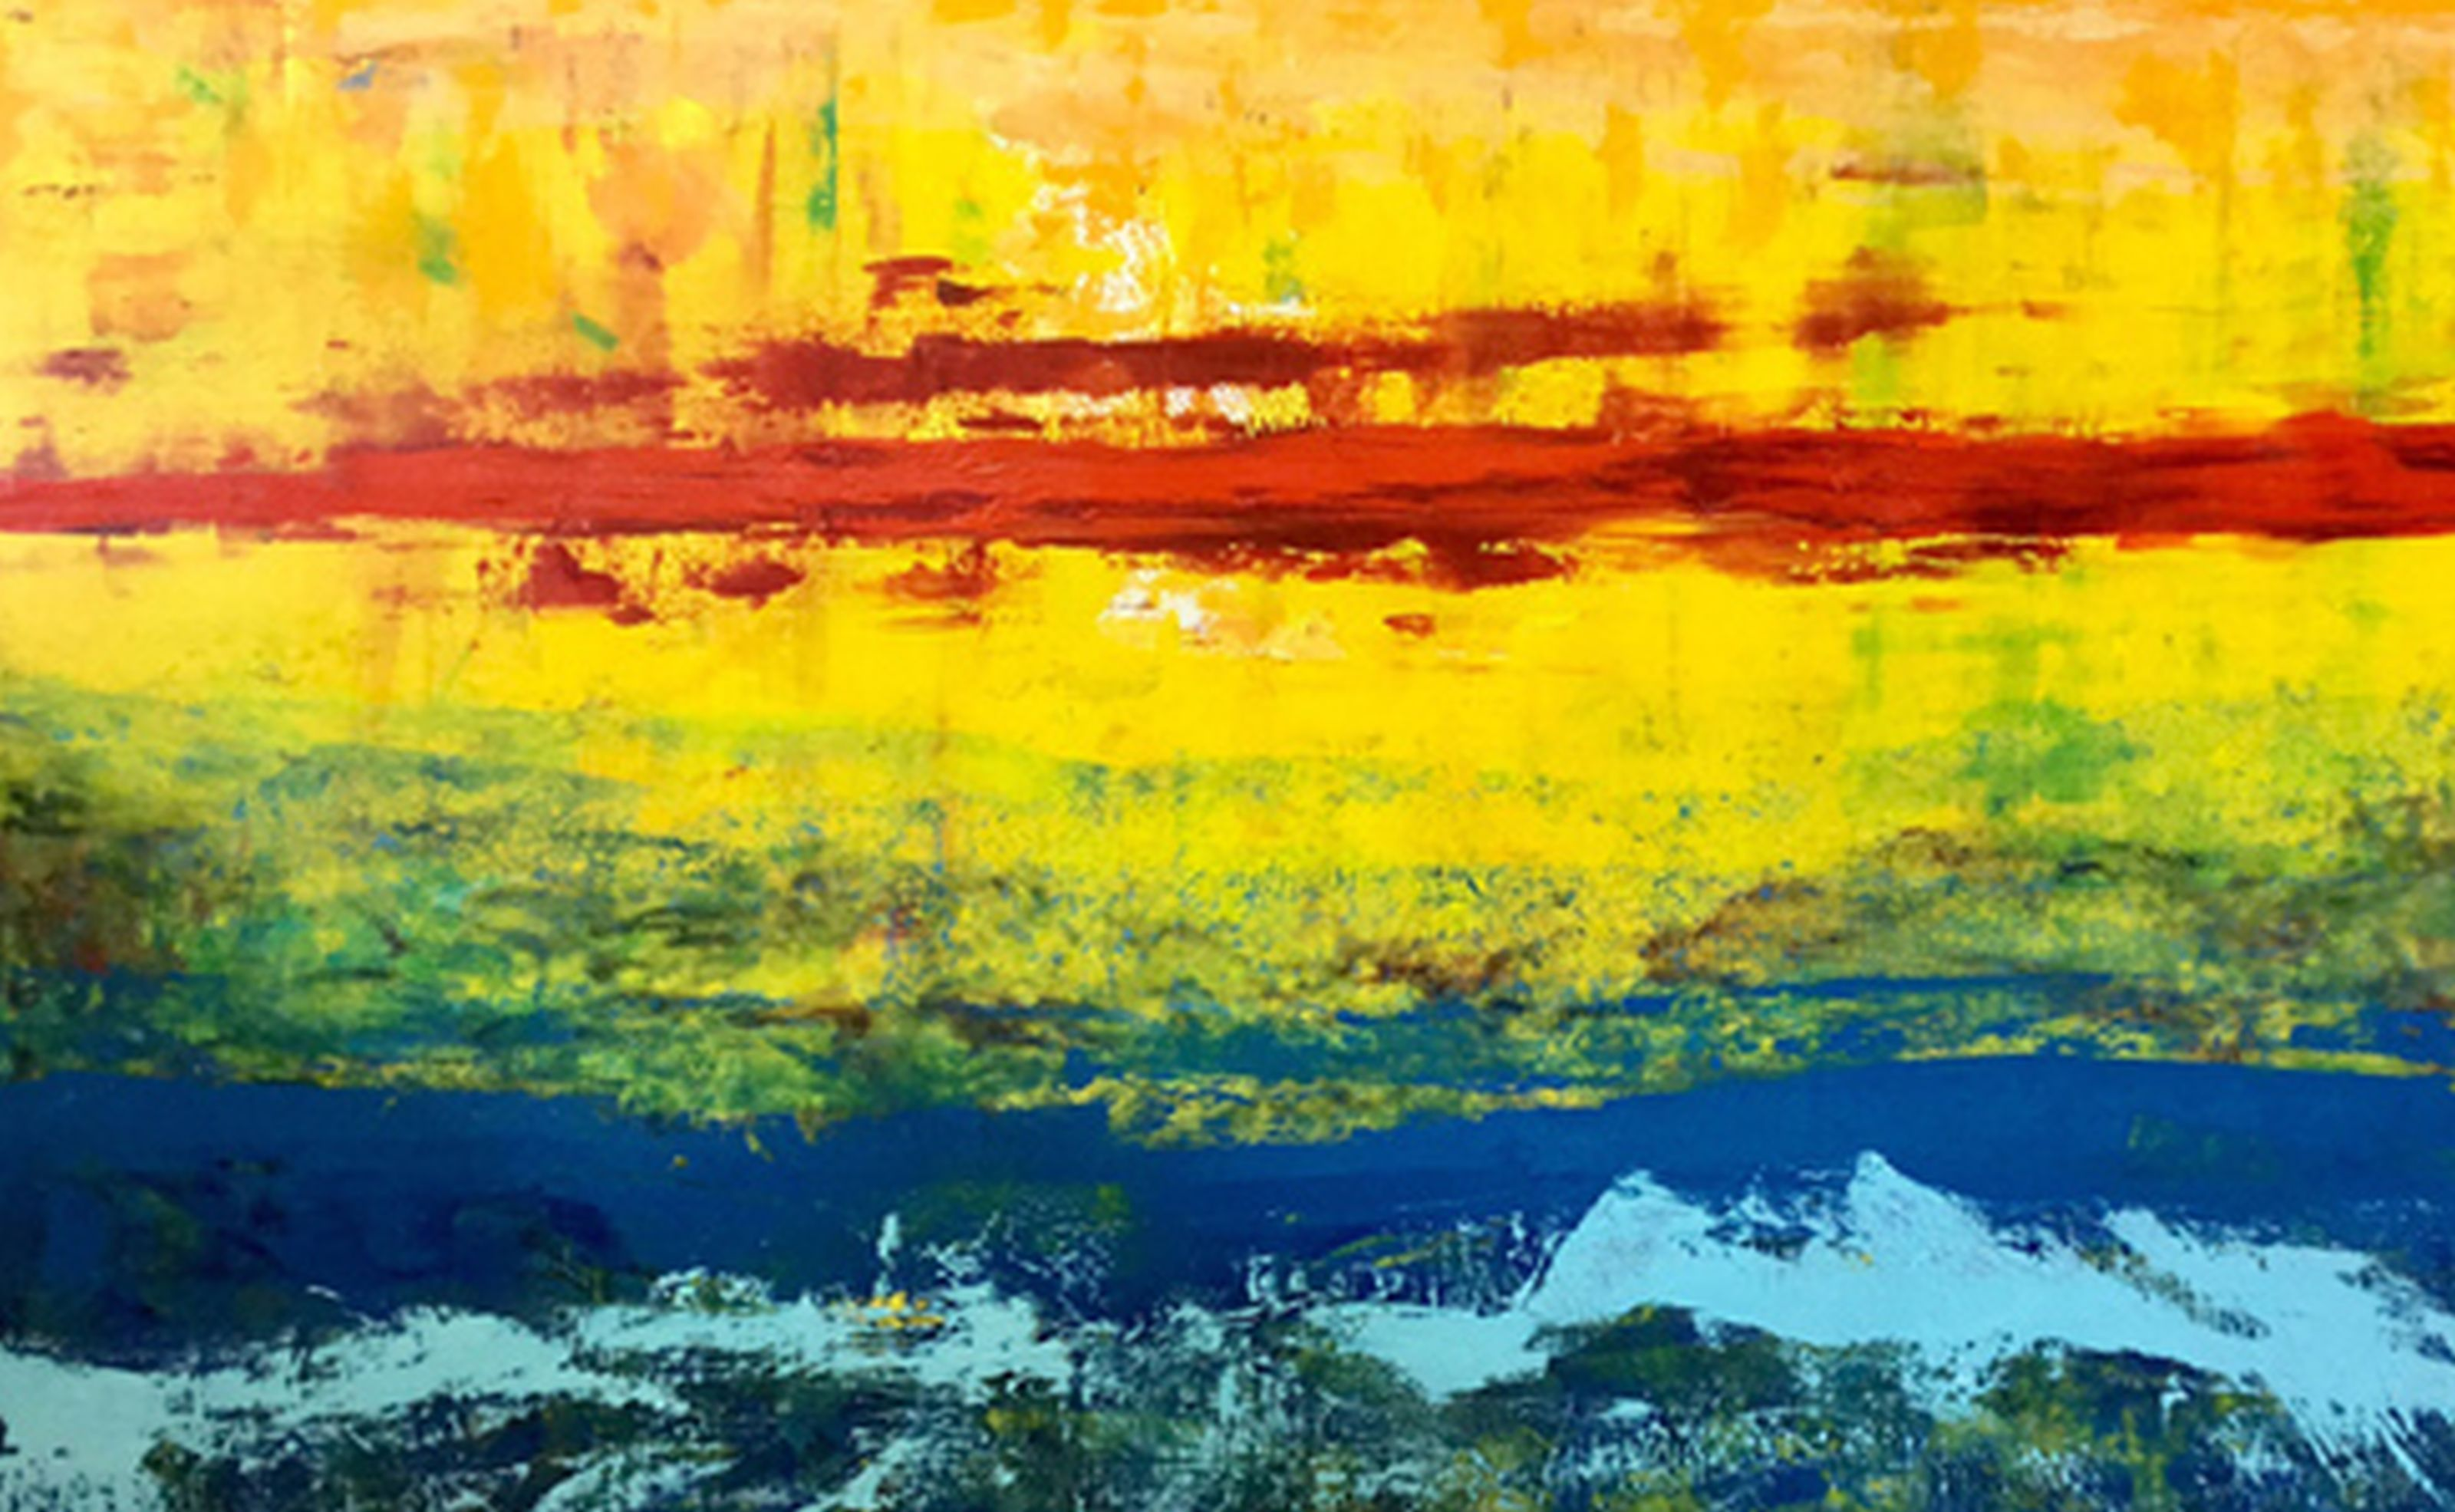 Artwork such as 'Harraseeket' an oil on canvas by Portland artist Russ Cox will be exhibited at the University of New England's Biddeford Campus Center through Oct. 2. SUBMITTED PHOTO